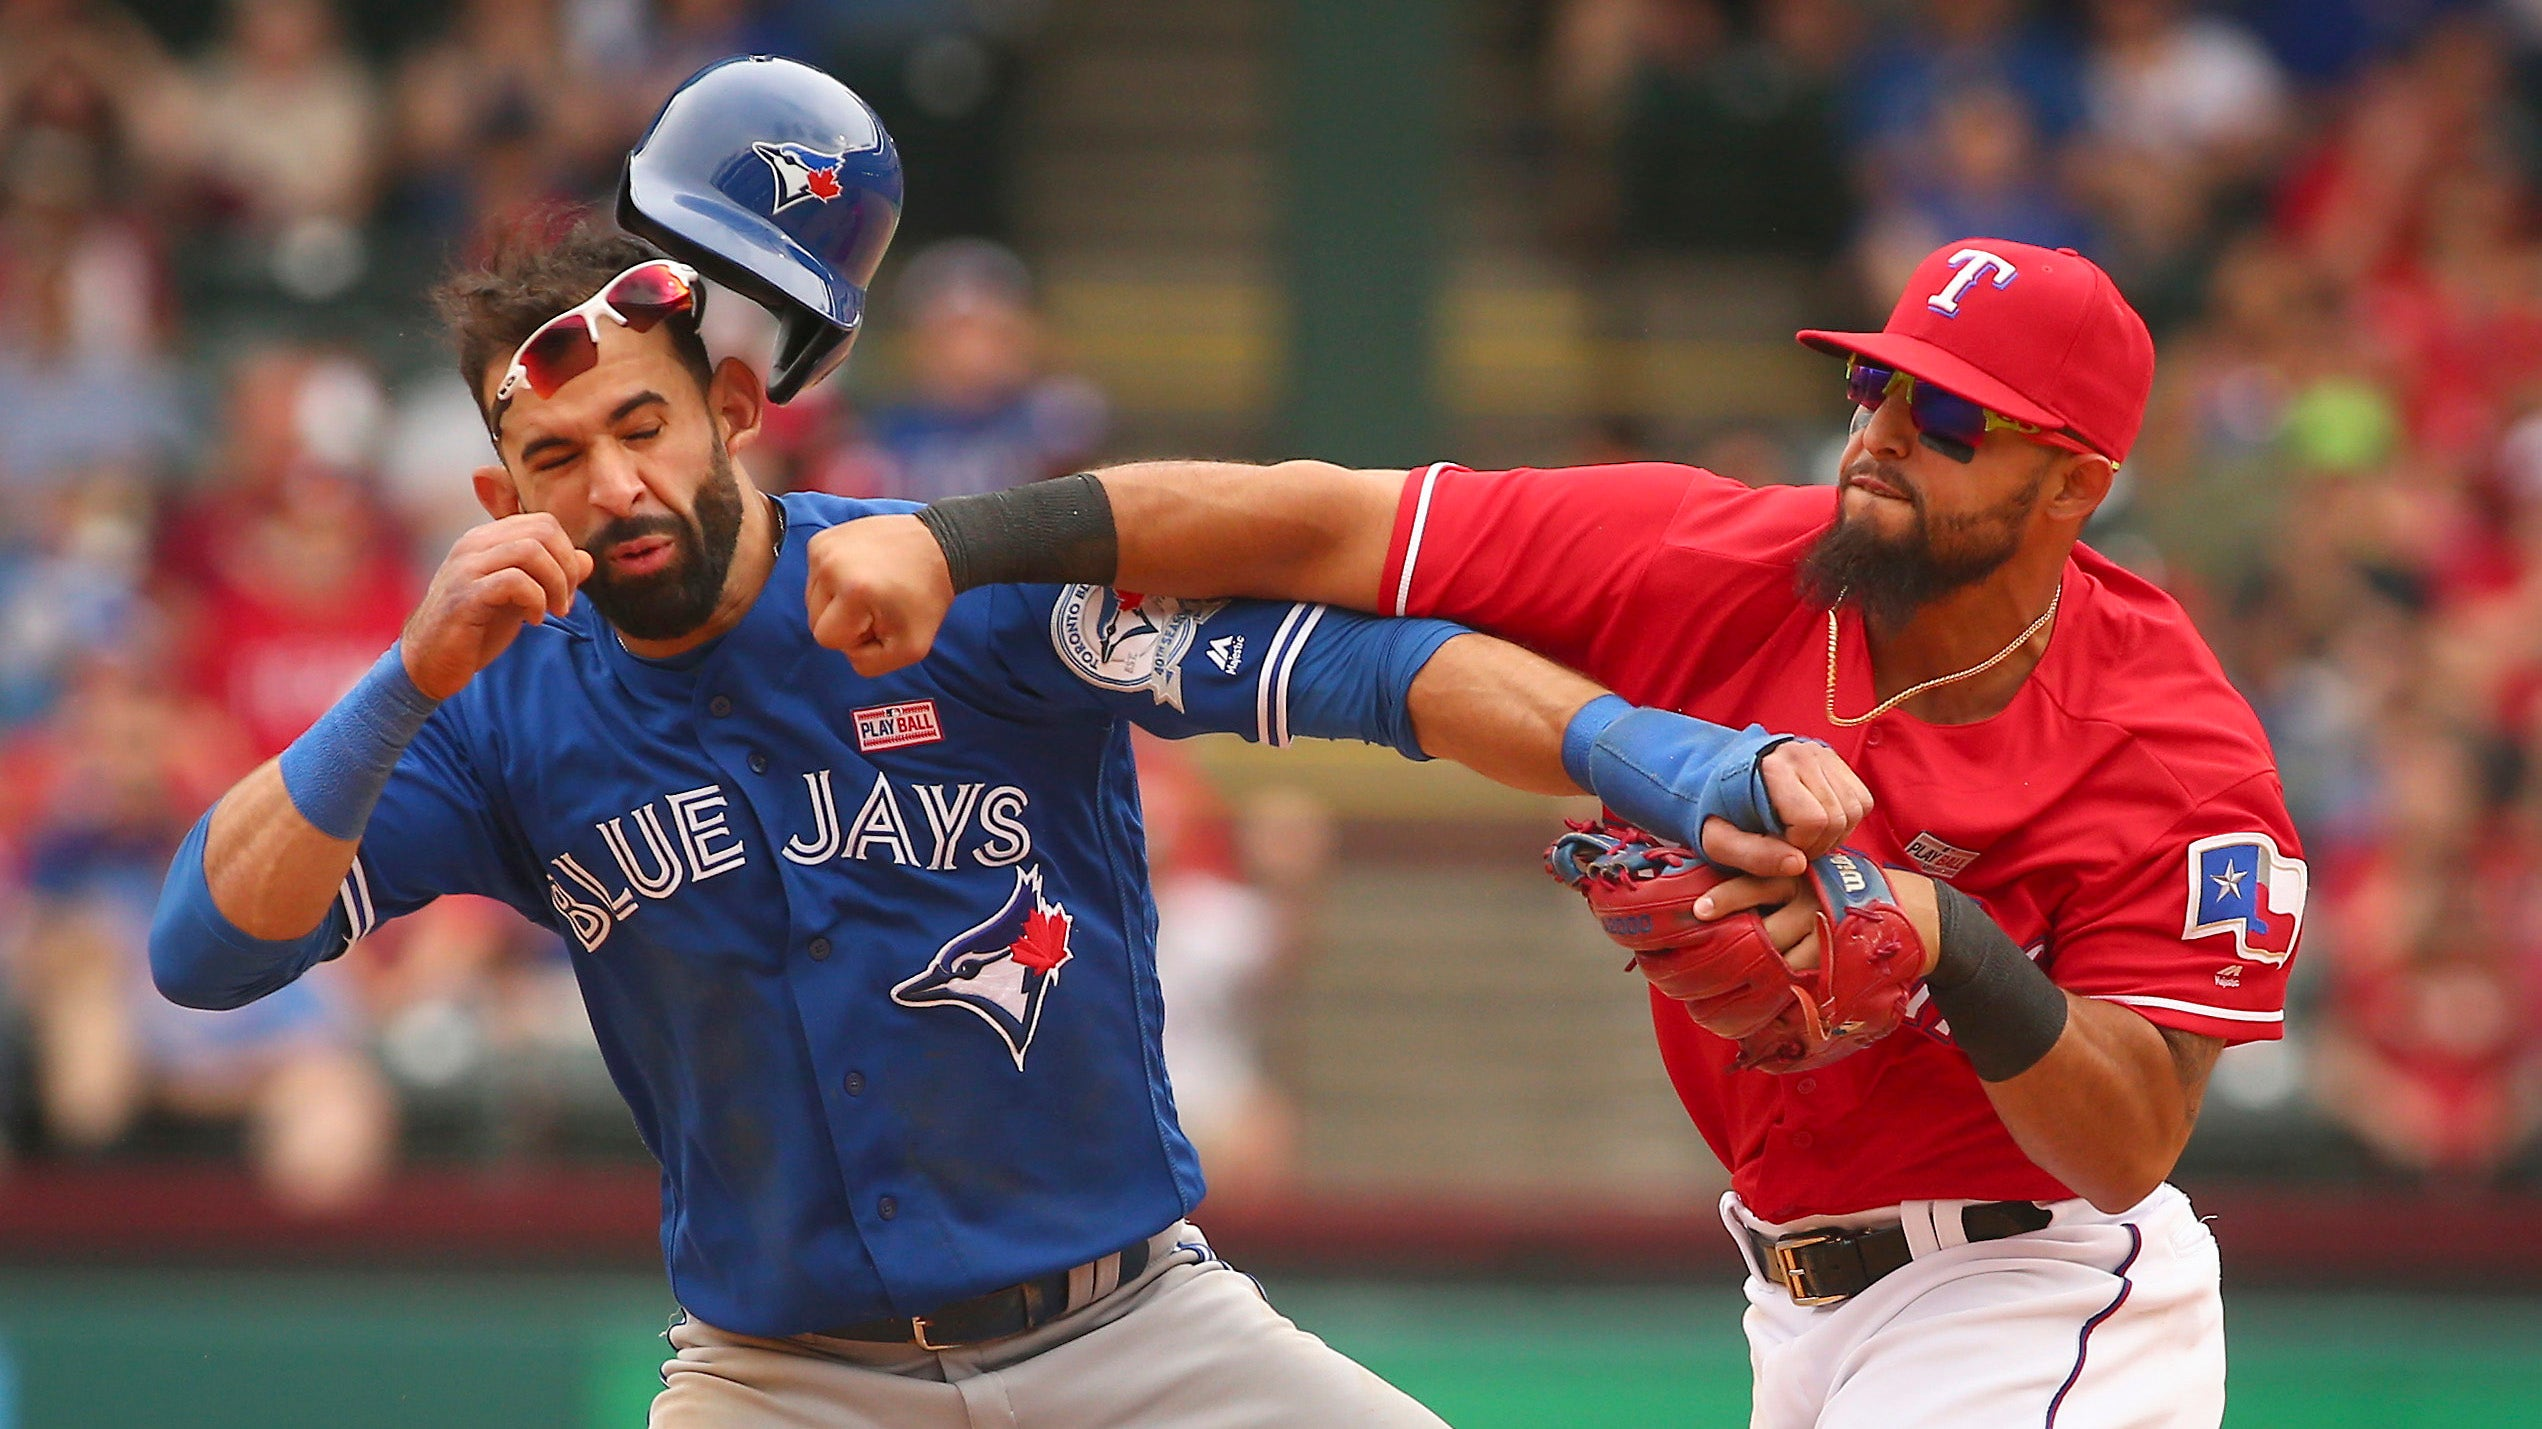 Blue Jays' Jose Bautista punched in the jaw when feud with Rangers erupts into brawl | Fox News Latino